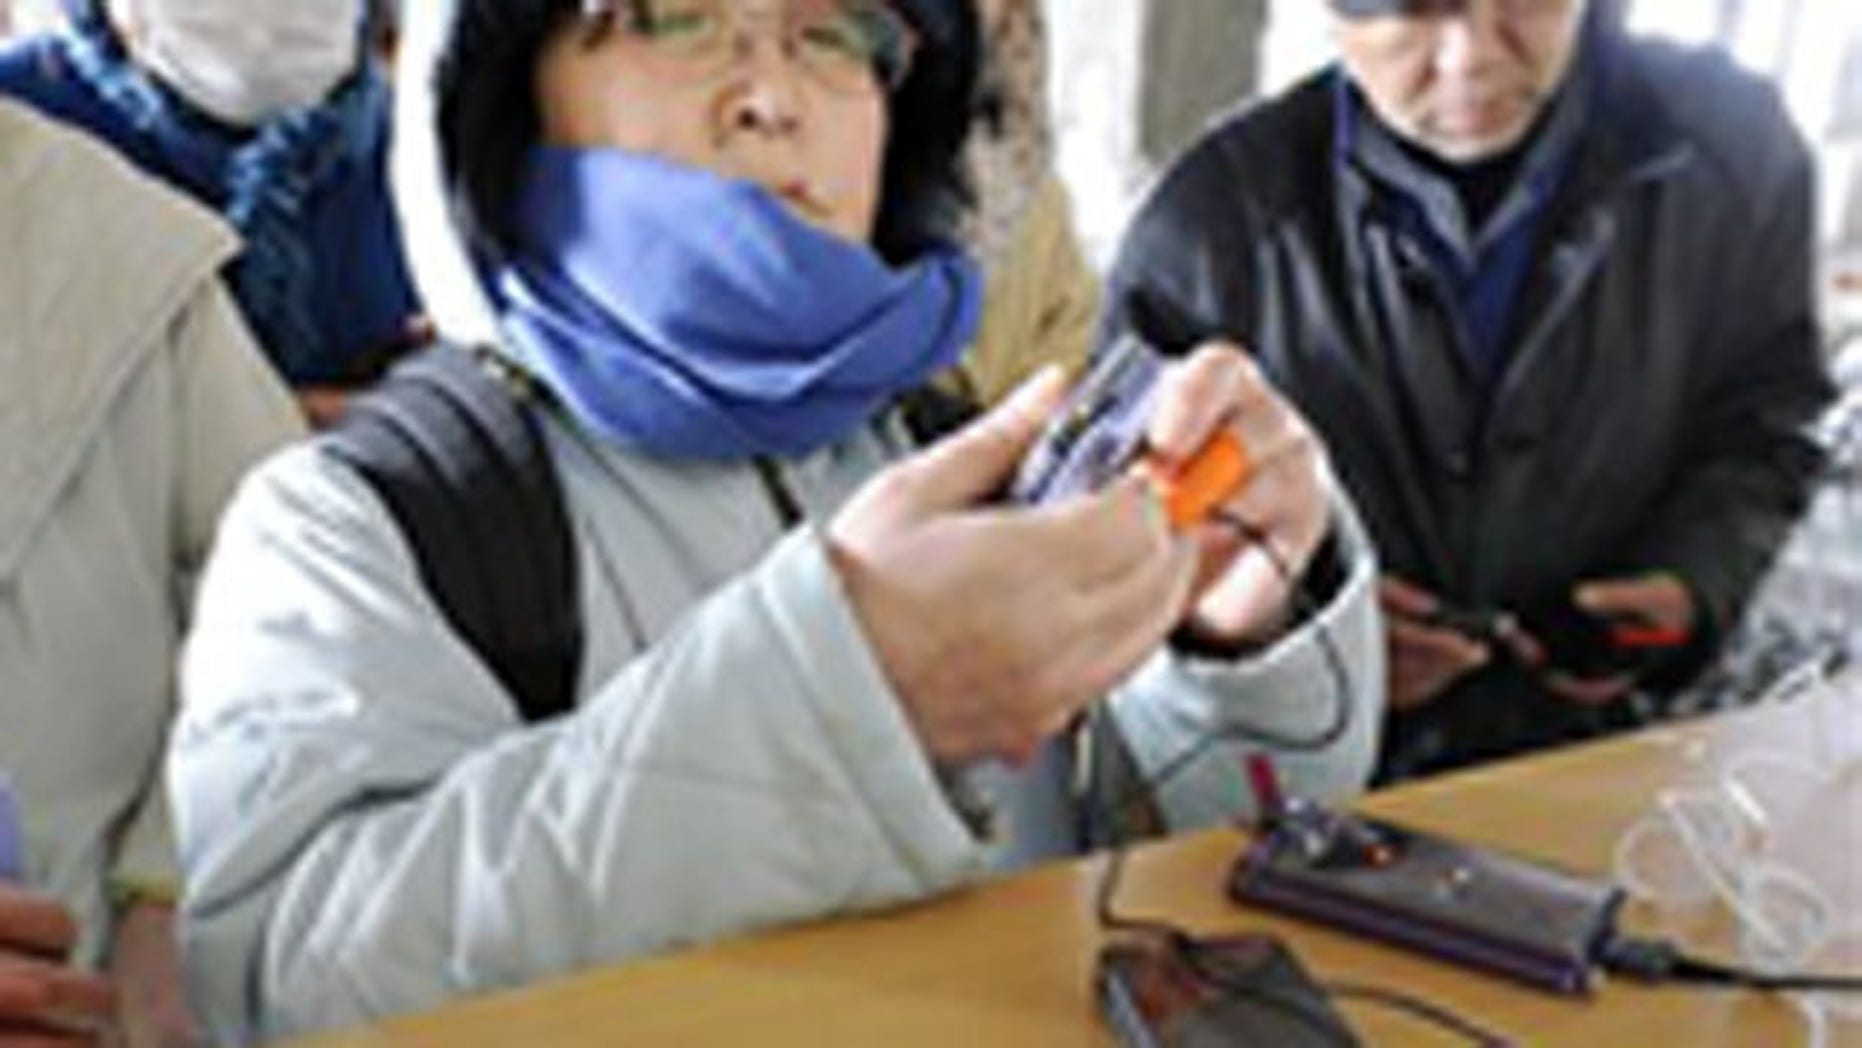 People recharge their cell phones at a shelter for Friday's earthquake and tsunami victims in Ishinomaki, Miyagi Prefecture, northern Japan, Thursday, March 17, 2011.